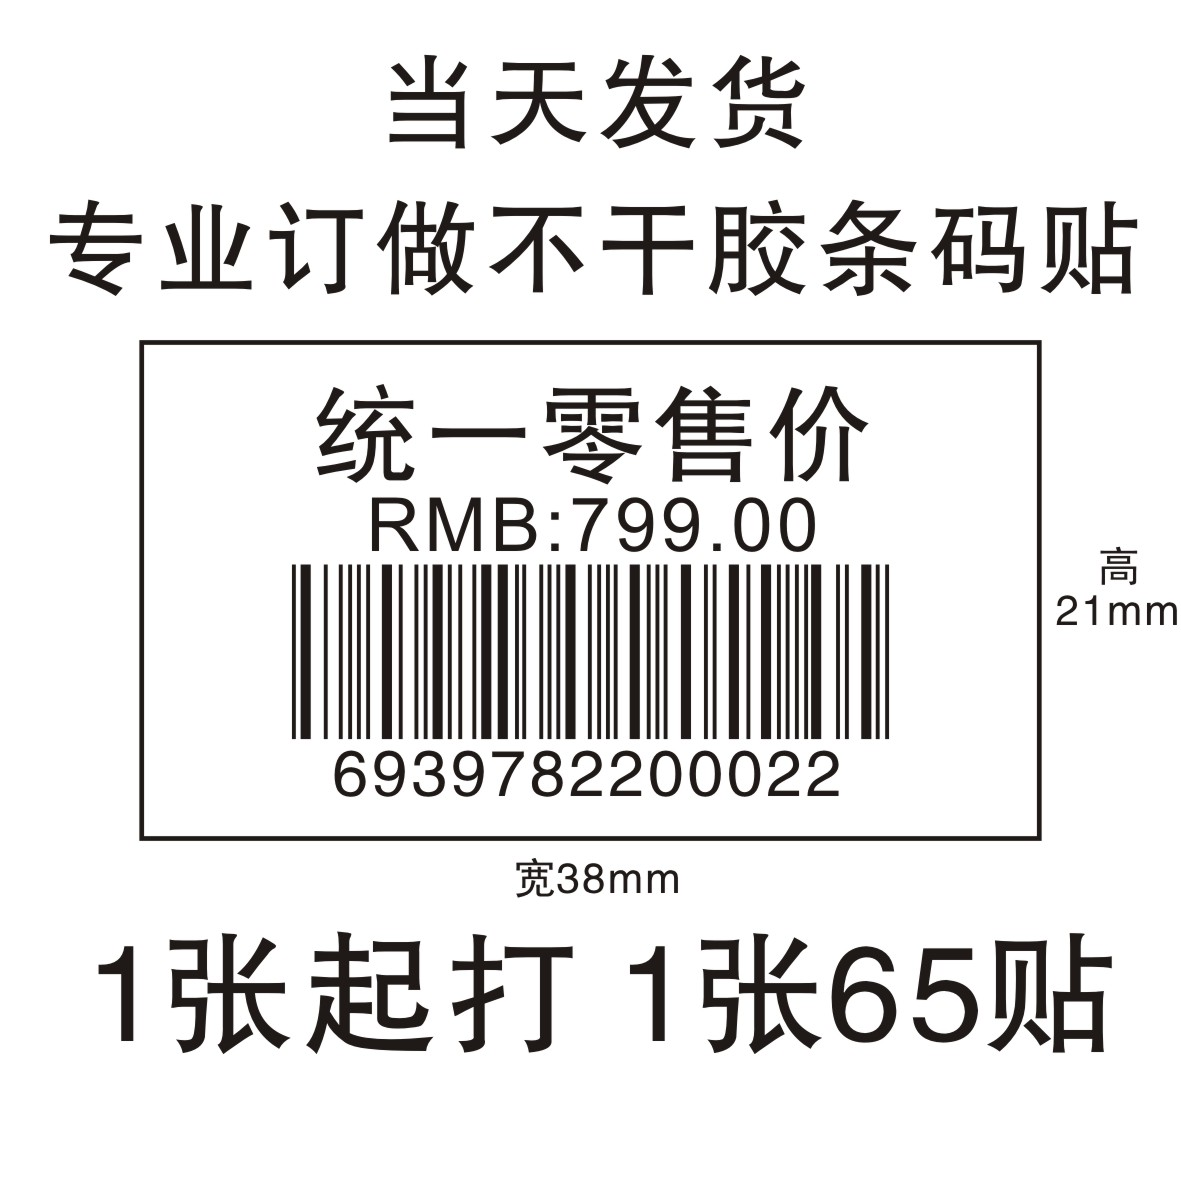 On behalf of the printing price tag bar code paper custom jewelry tag stickers price stickers two dimensional code stickers custom